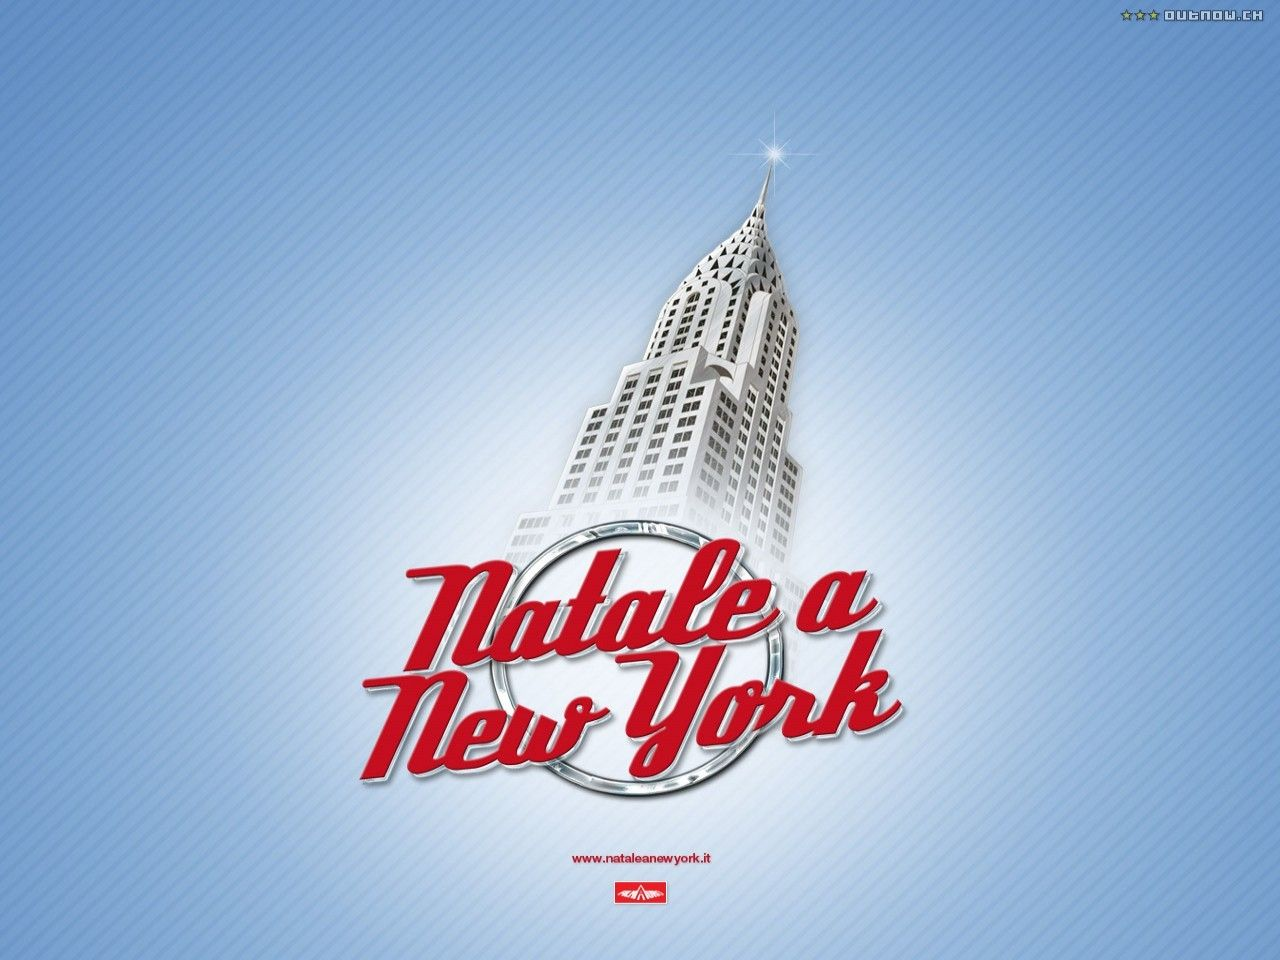 Natale A New York Completo In Italiano Natale A New York Film Completo Italiano Comedy Films Best Christmas Movies New York Christmas